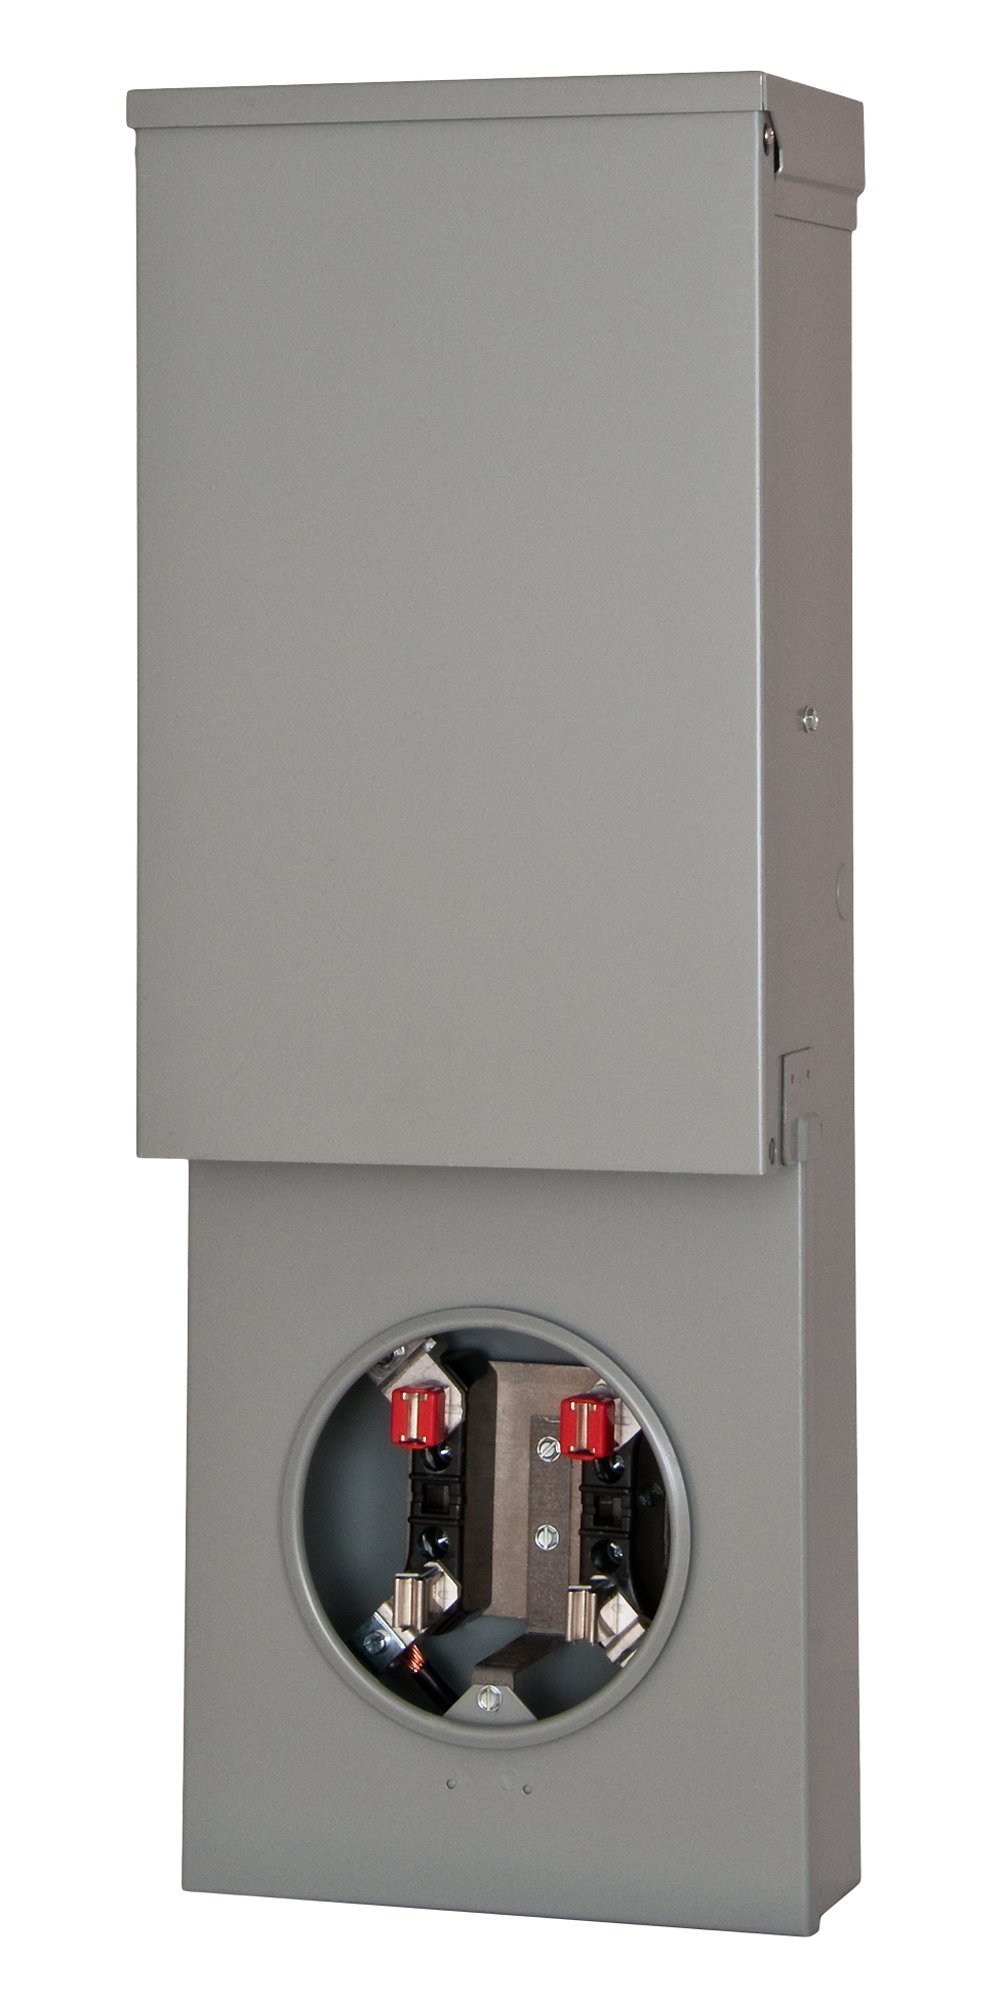 Siemens TL5F77RB Talon Temporary Power Outlet Panel with a Gfci Protected 20 Amp 6-20R Receptacle and 2 x 20 Amp Duplex Receptacles